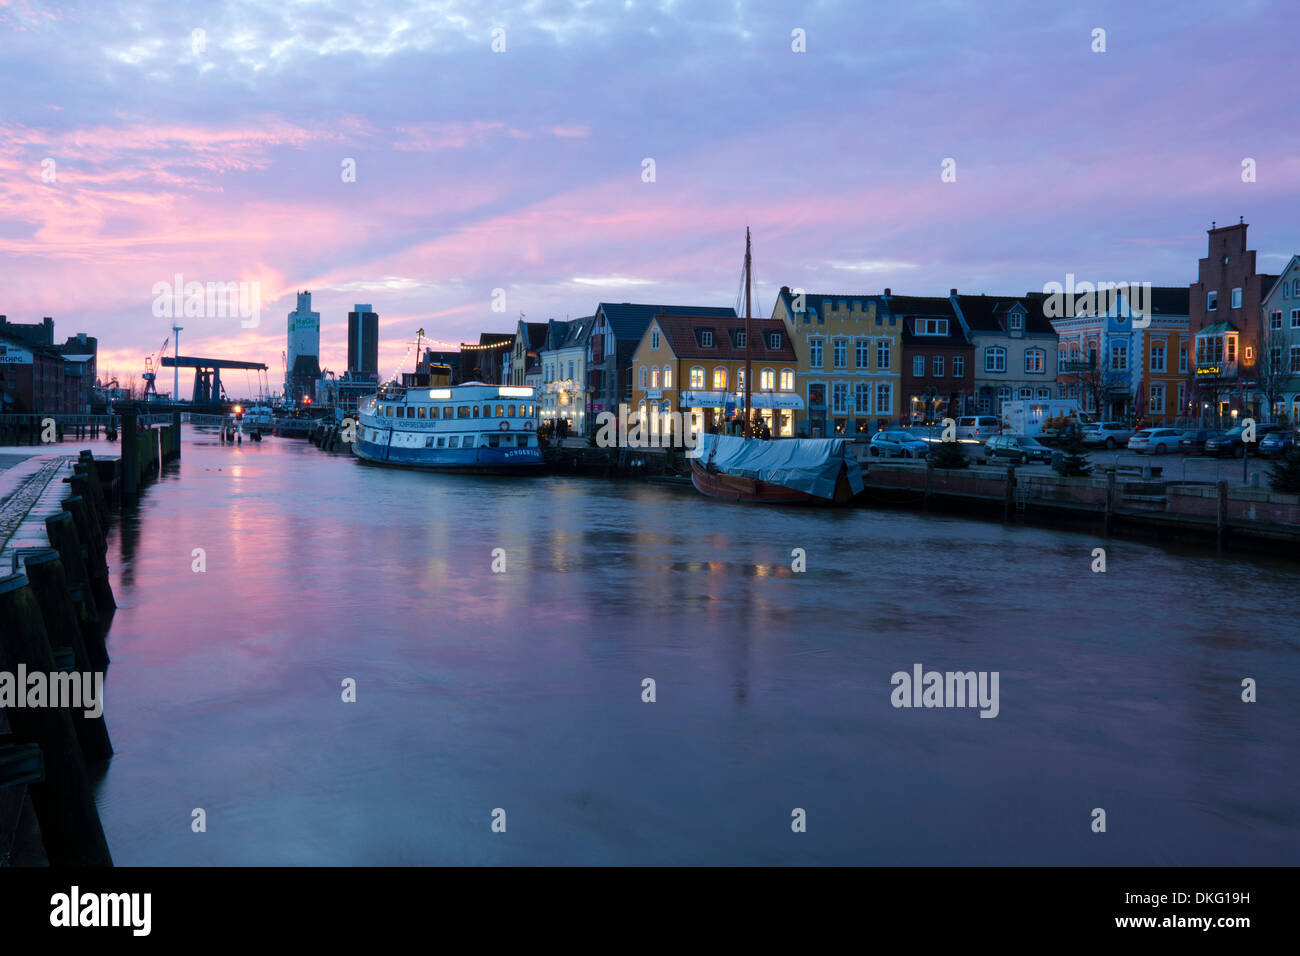 sunset over inland harbour with harbour road, husum city, schleswig-holstein, germany, europe - Stock Image